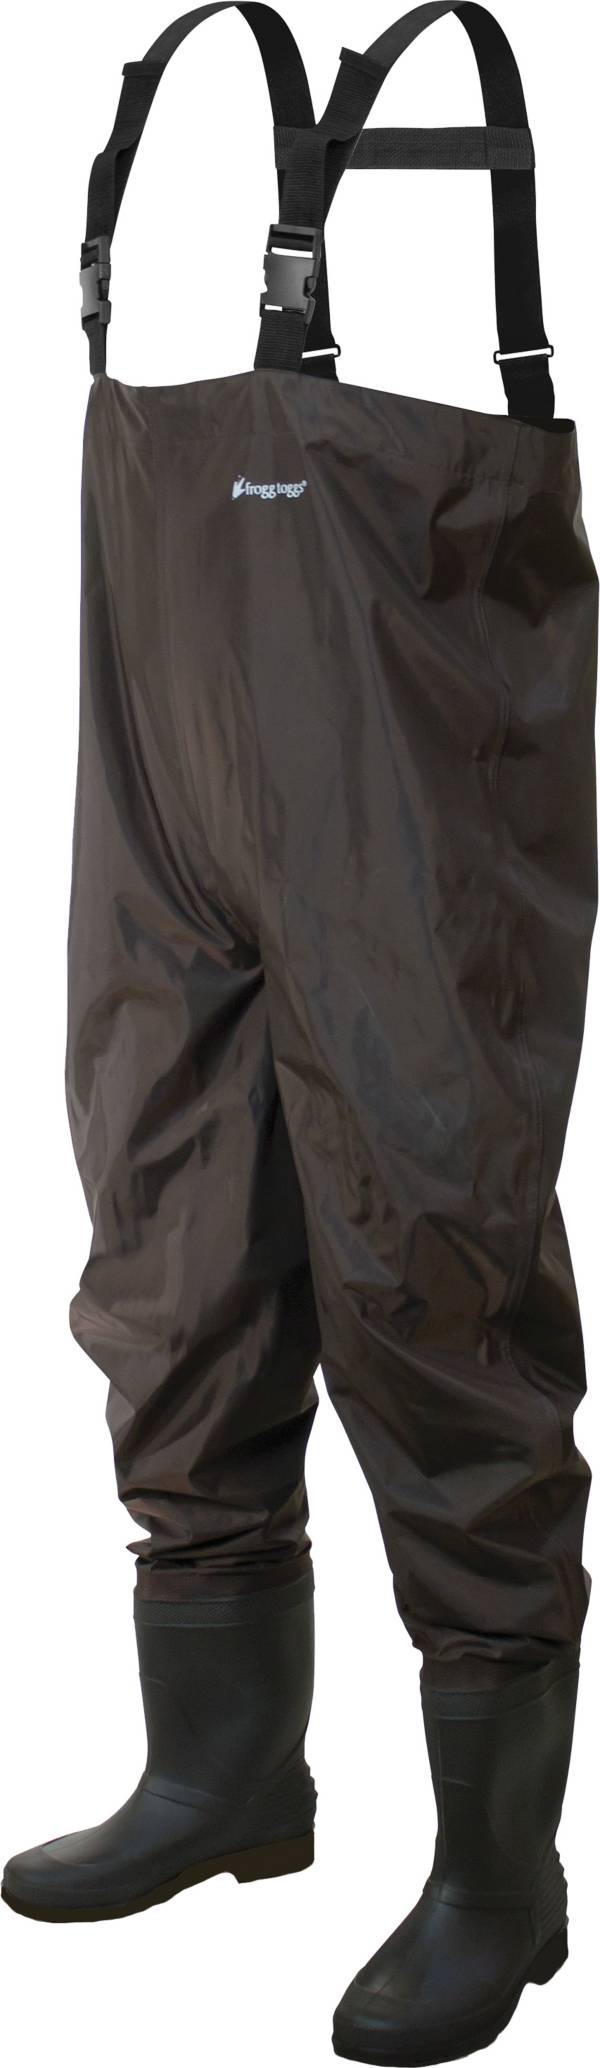 frogg toggs Rana II PVC Chest Waders product image